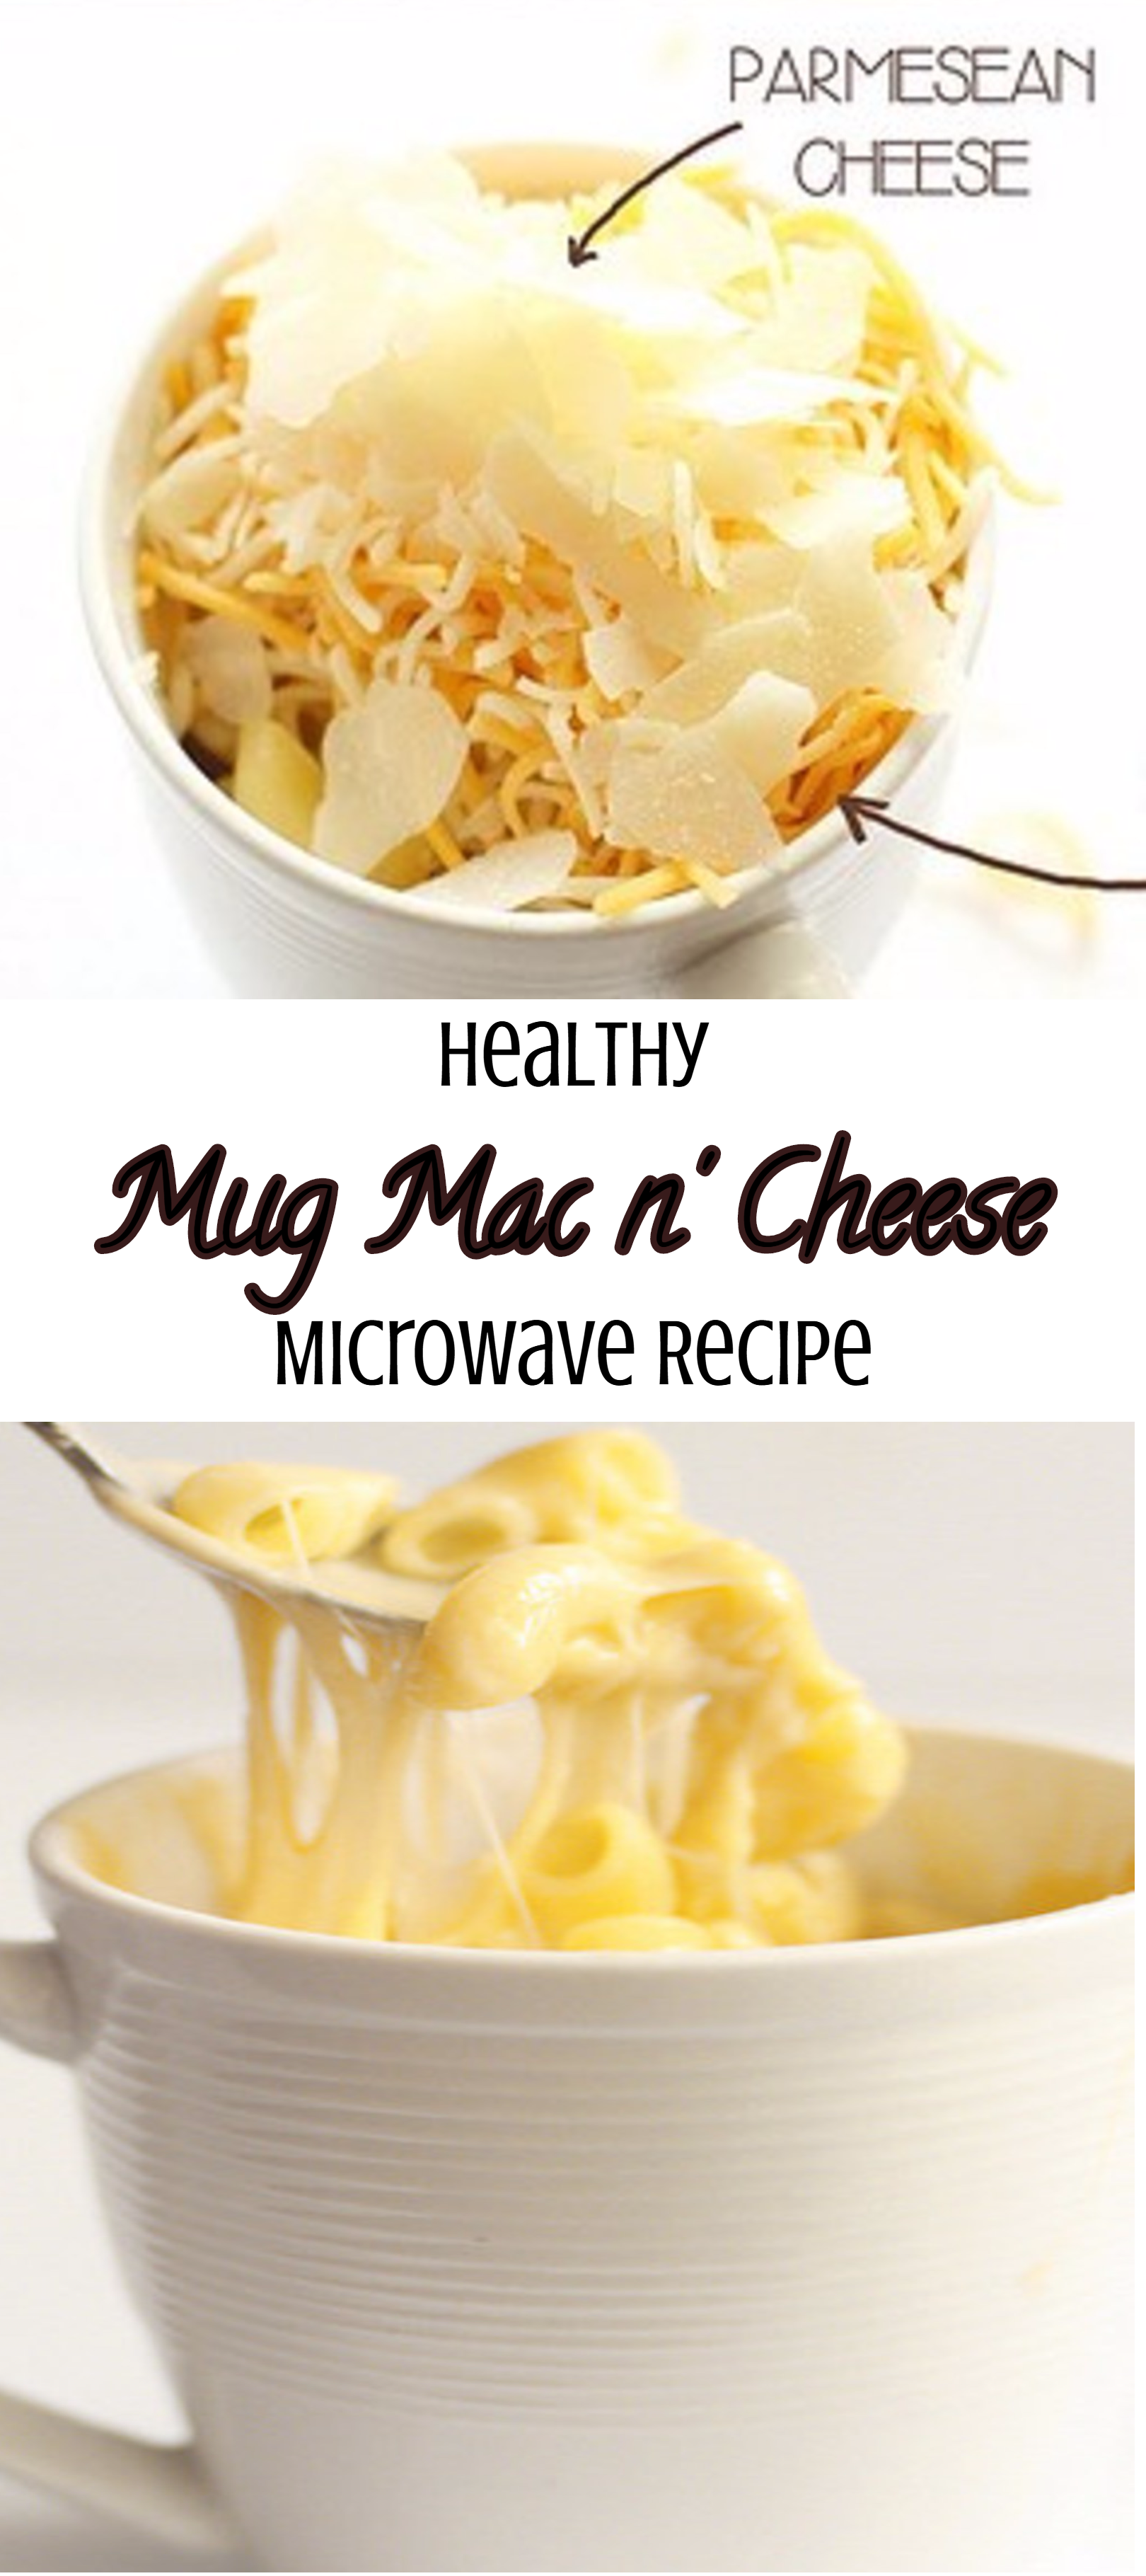 Quick healthy microwave meals healthy microwave recipes healthy homemade mug mac n cheese in a microwave recipe forumfinder Image collections